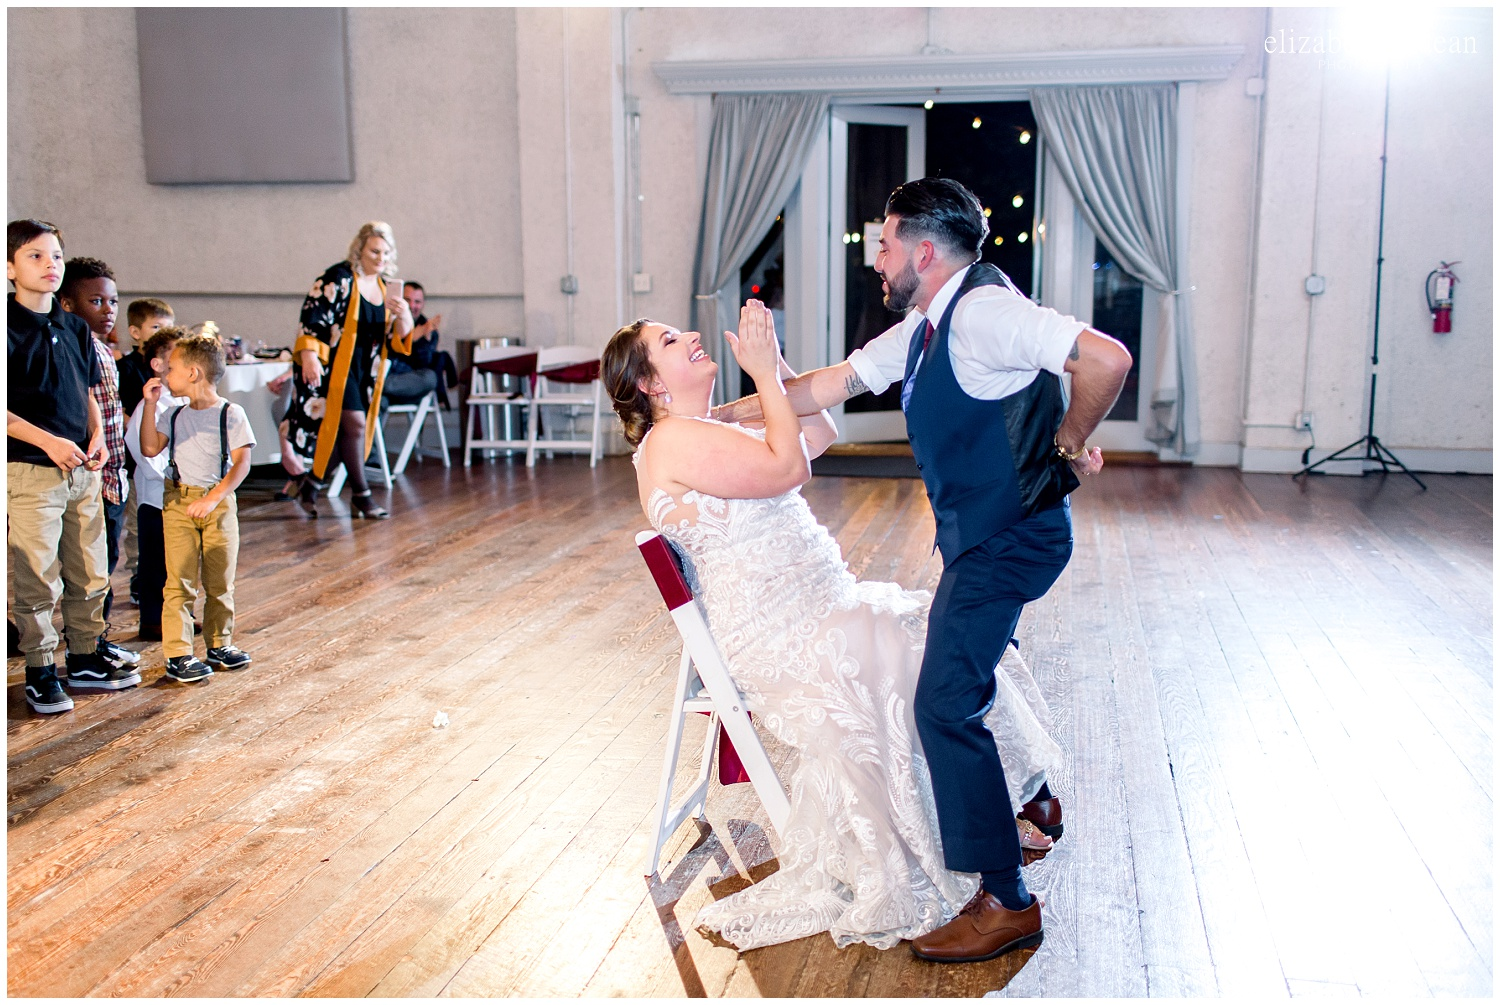 -behind-the-scenes-of-a-wedding-photographer-2018-elizabeth-ladean-photography-photo_3559.jpg